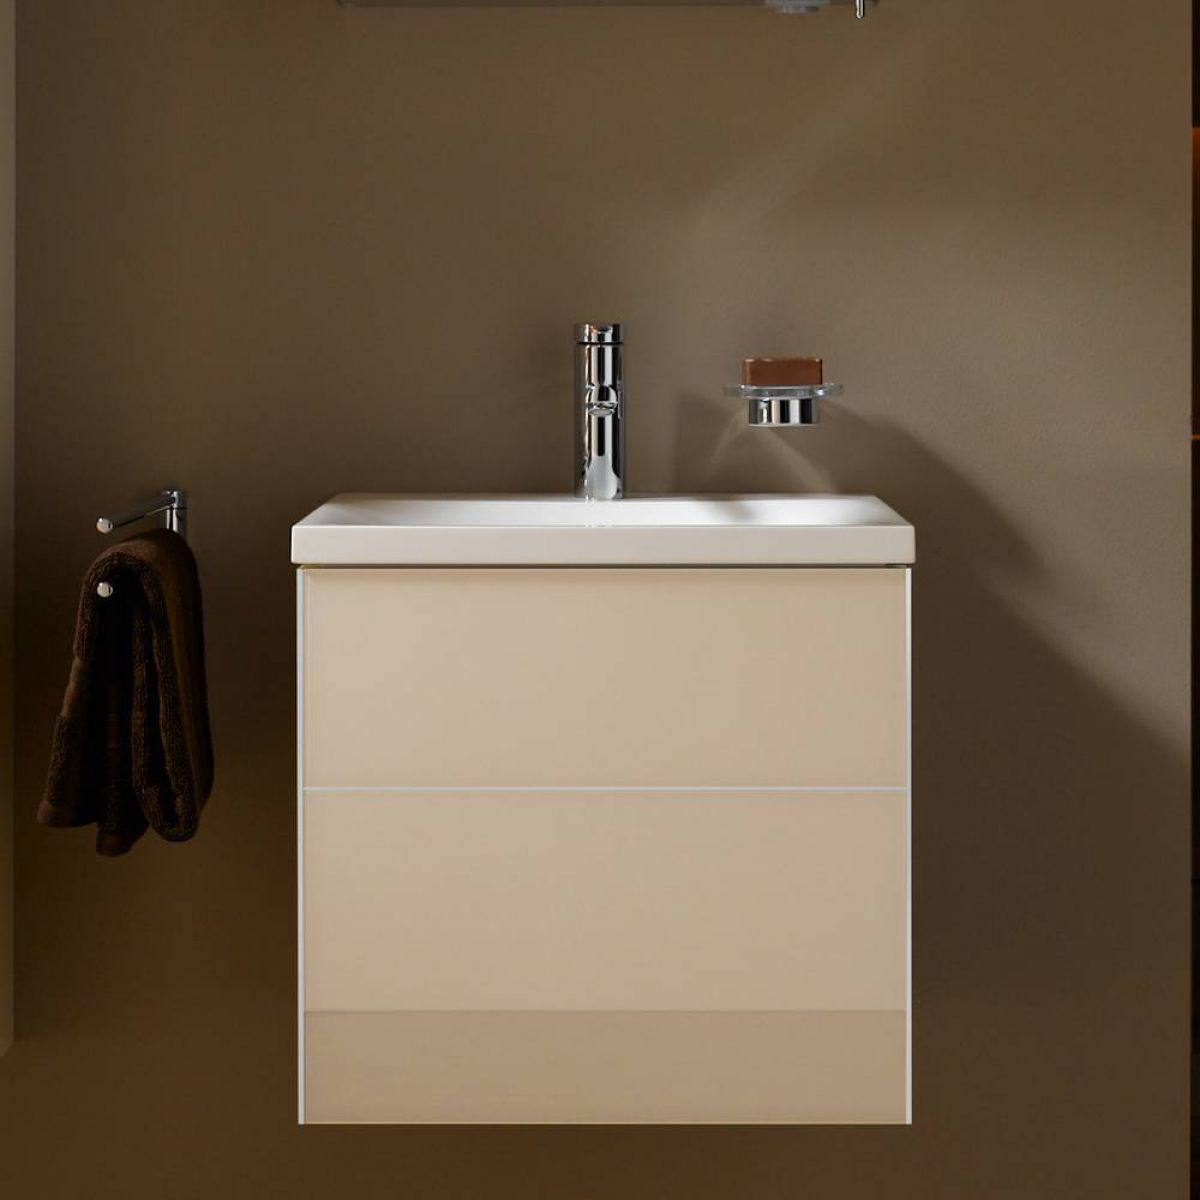 keuco royal reflex cloakroom vanity unit with basin uk bathrooms. Black Bedroom Furniture Sets. Home Design Ideas